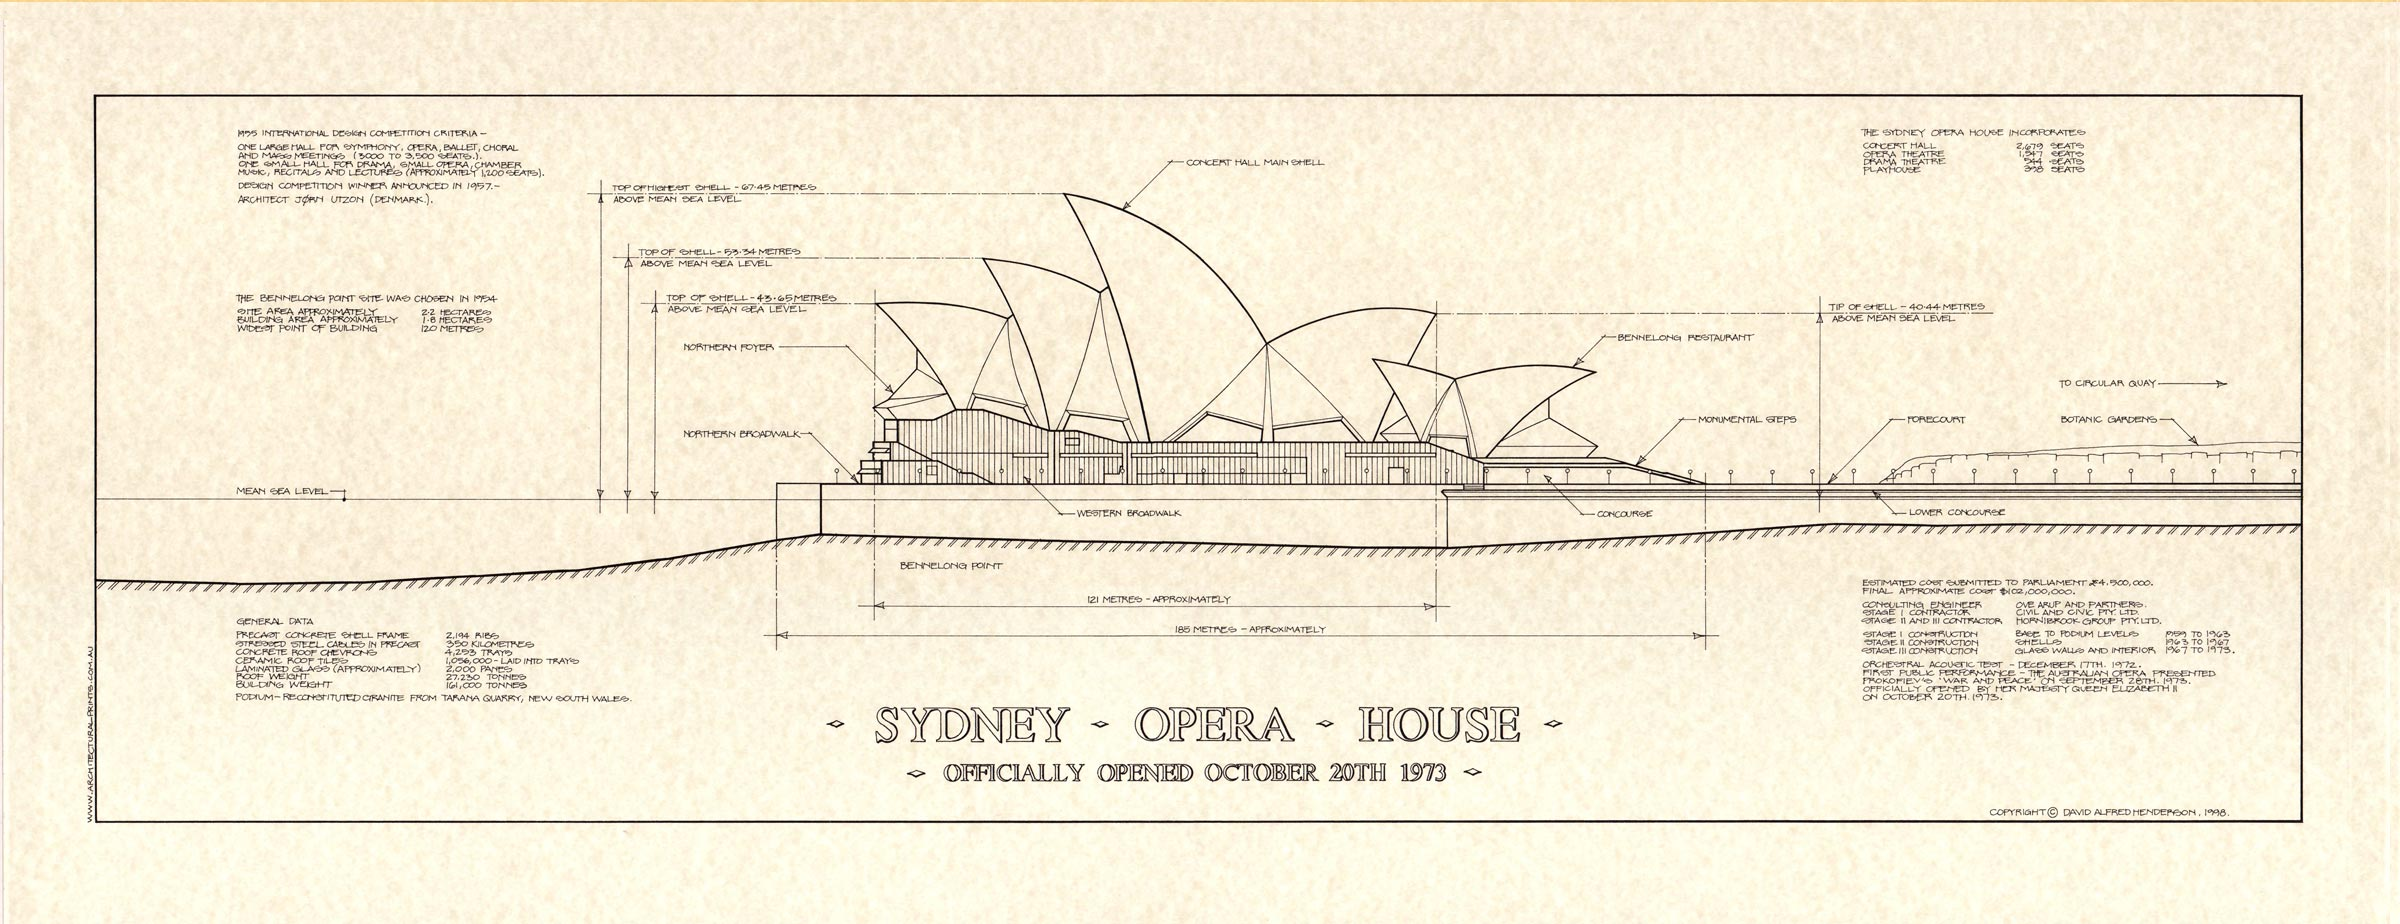 Sydney opera house print architectural prints for Print architectural plans